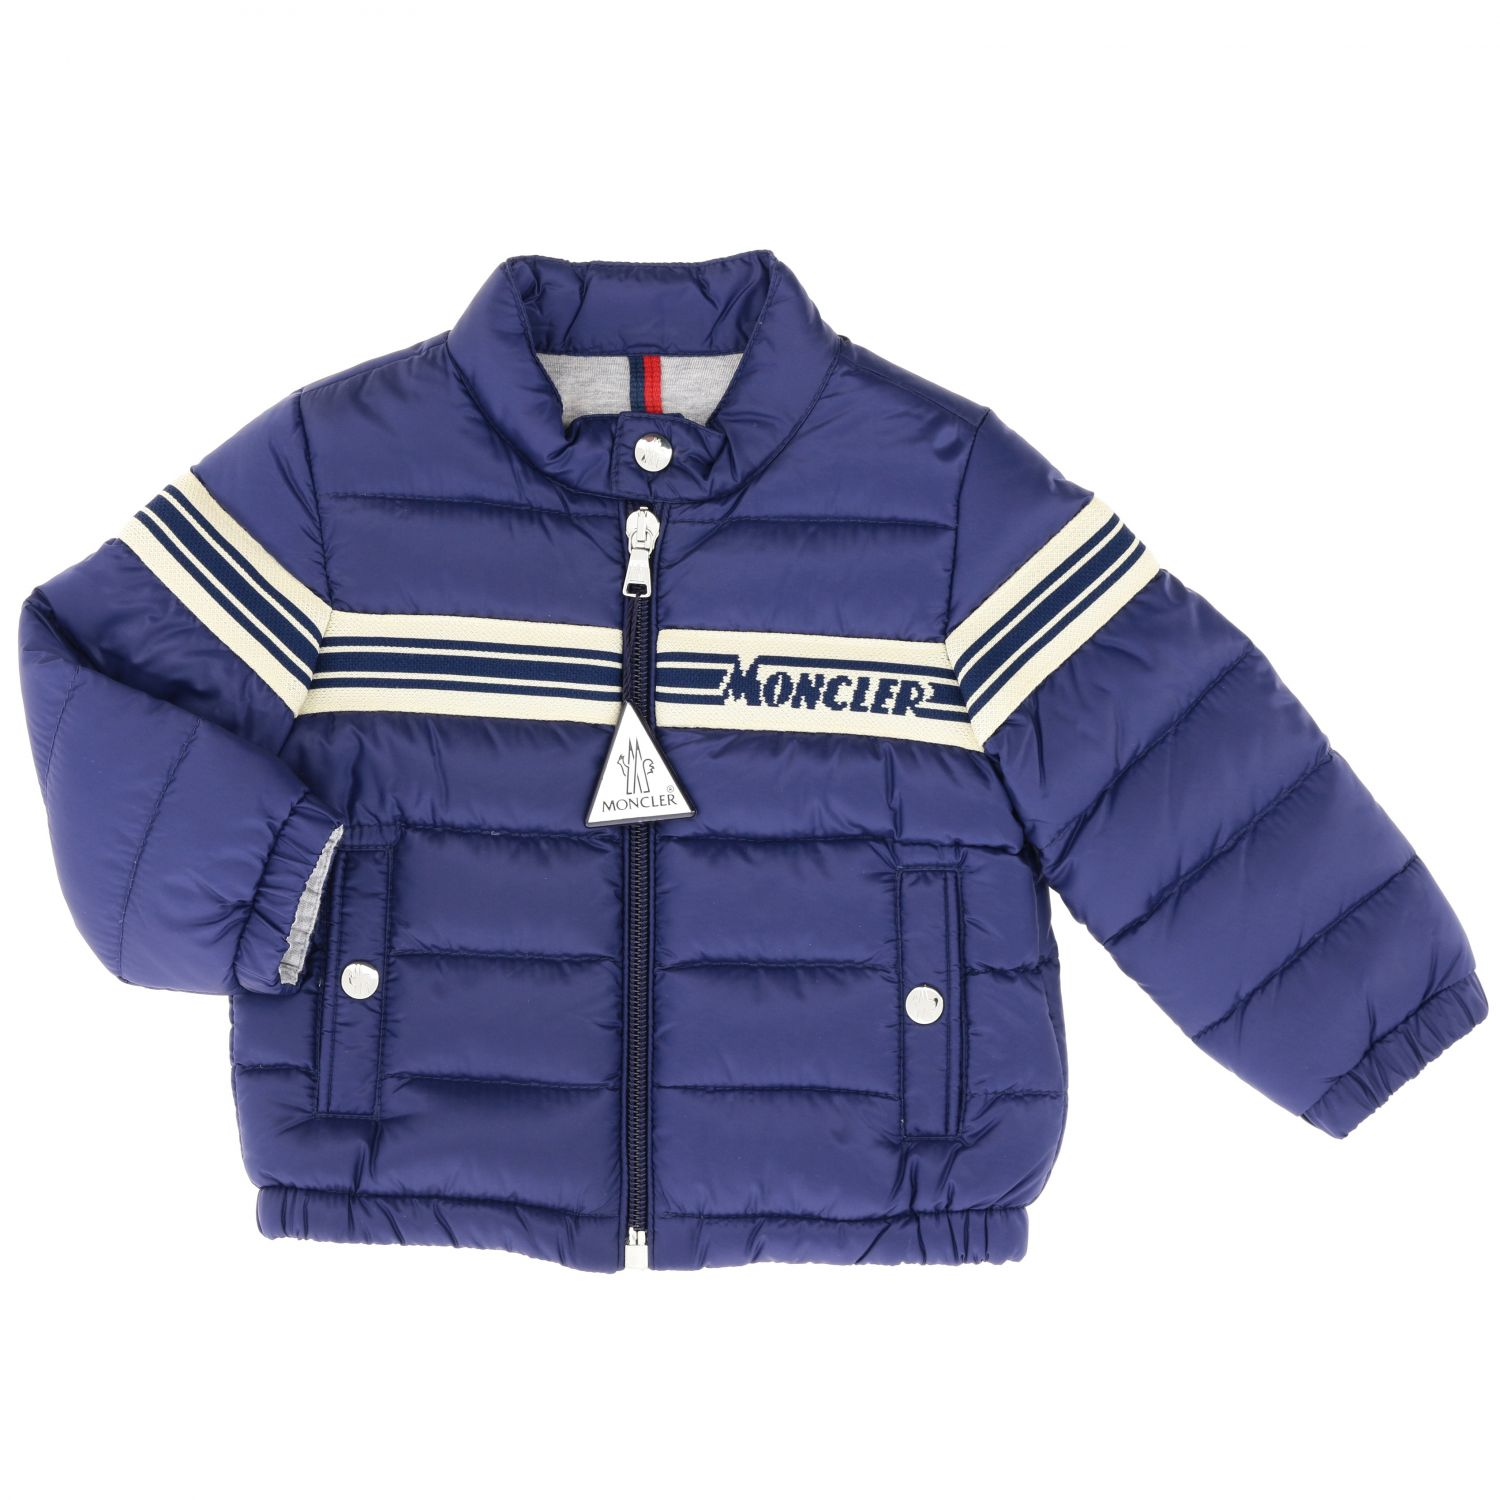 Haraiki Moncler down jacket with striped band and logo navy 1